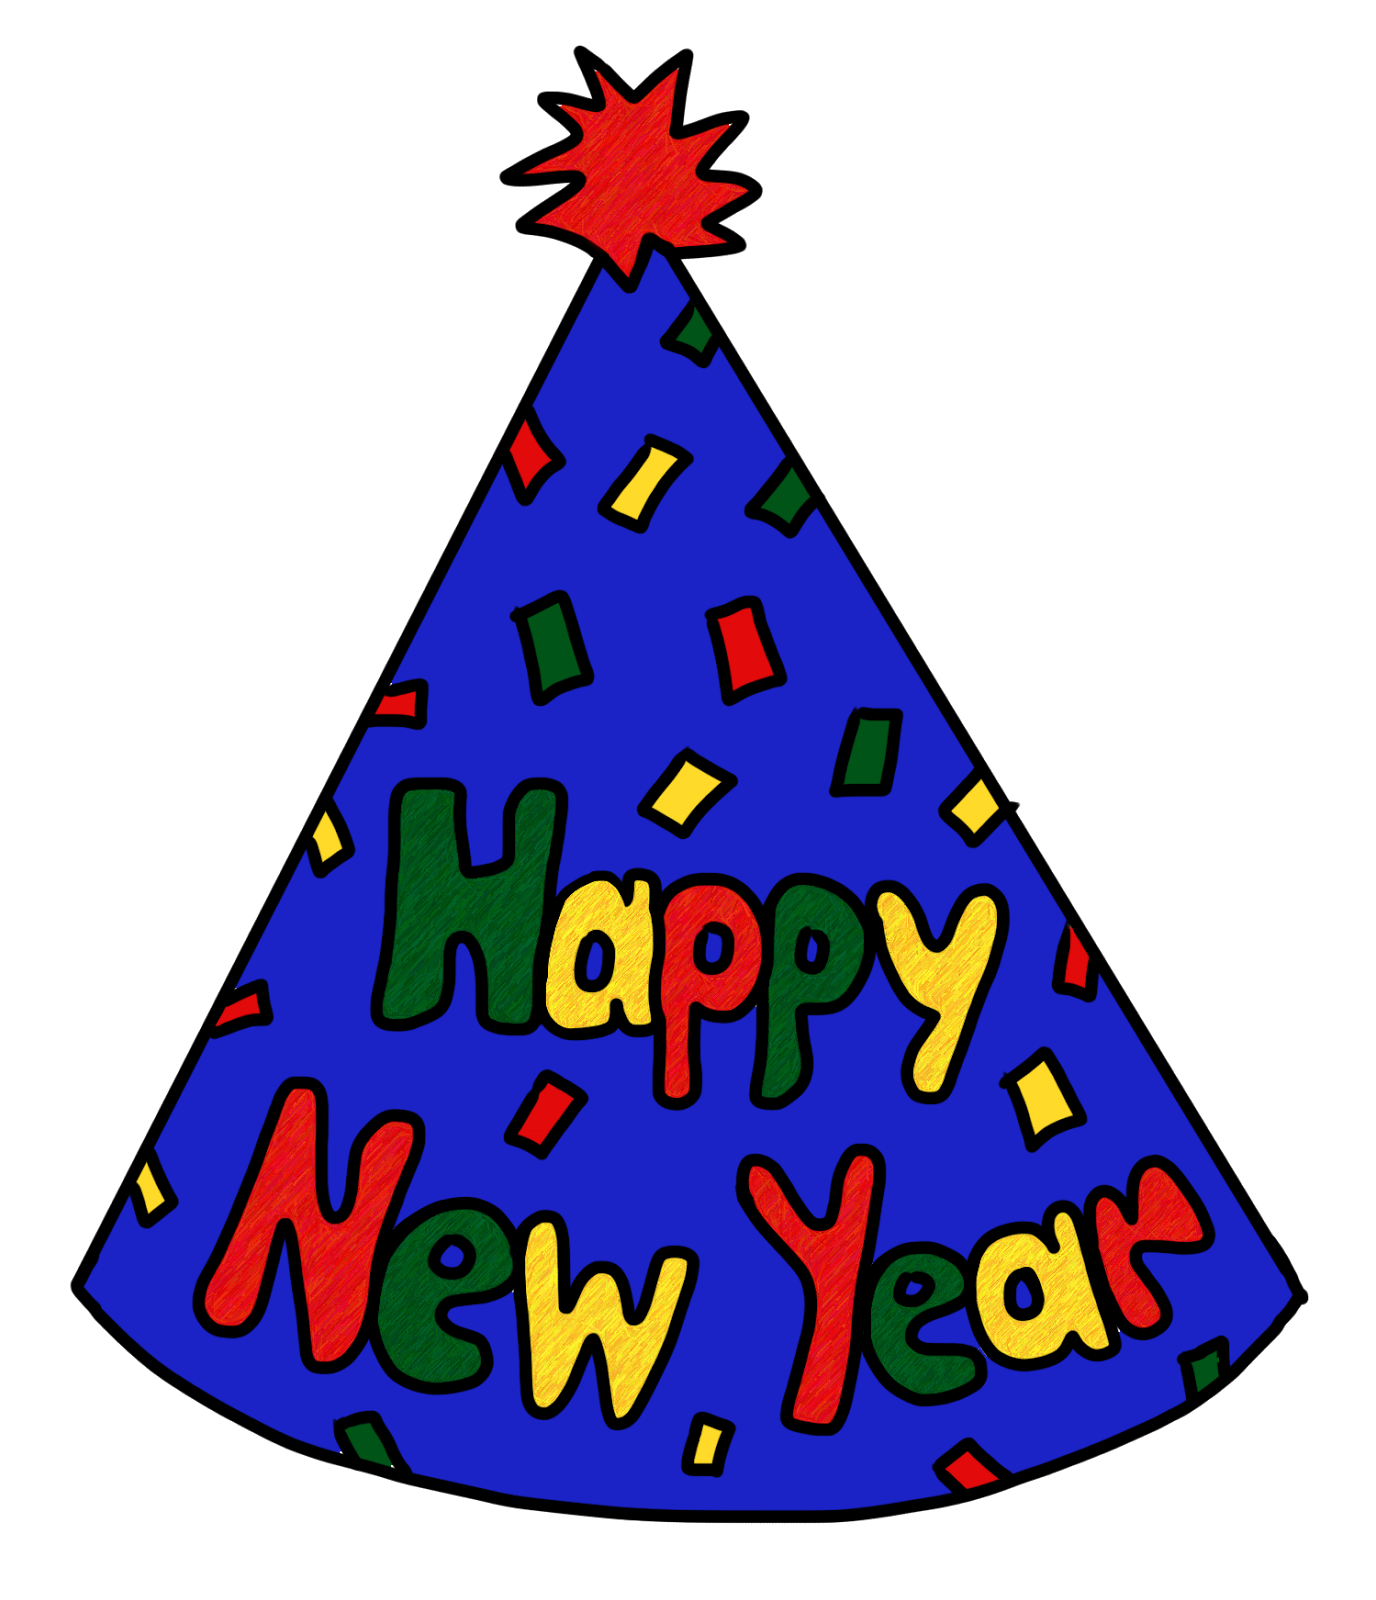 Christmas and new year clipart clip freeuse stock New-years-eve-animated-happy-new-year-clipart-clipartdeck-clip ... clip freeuse stock